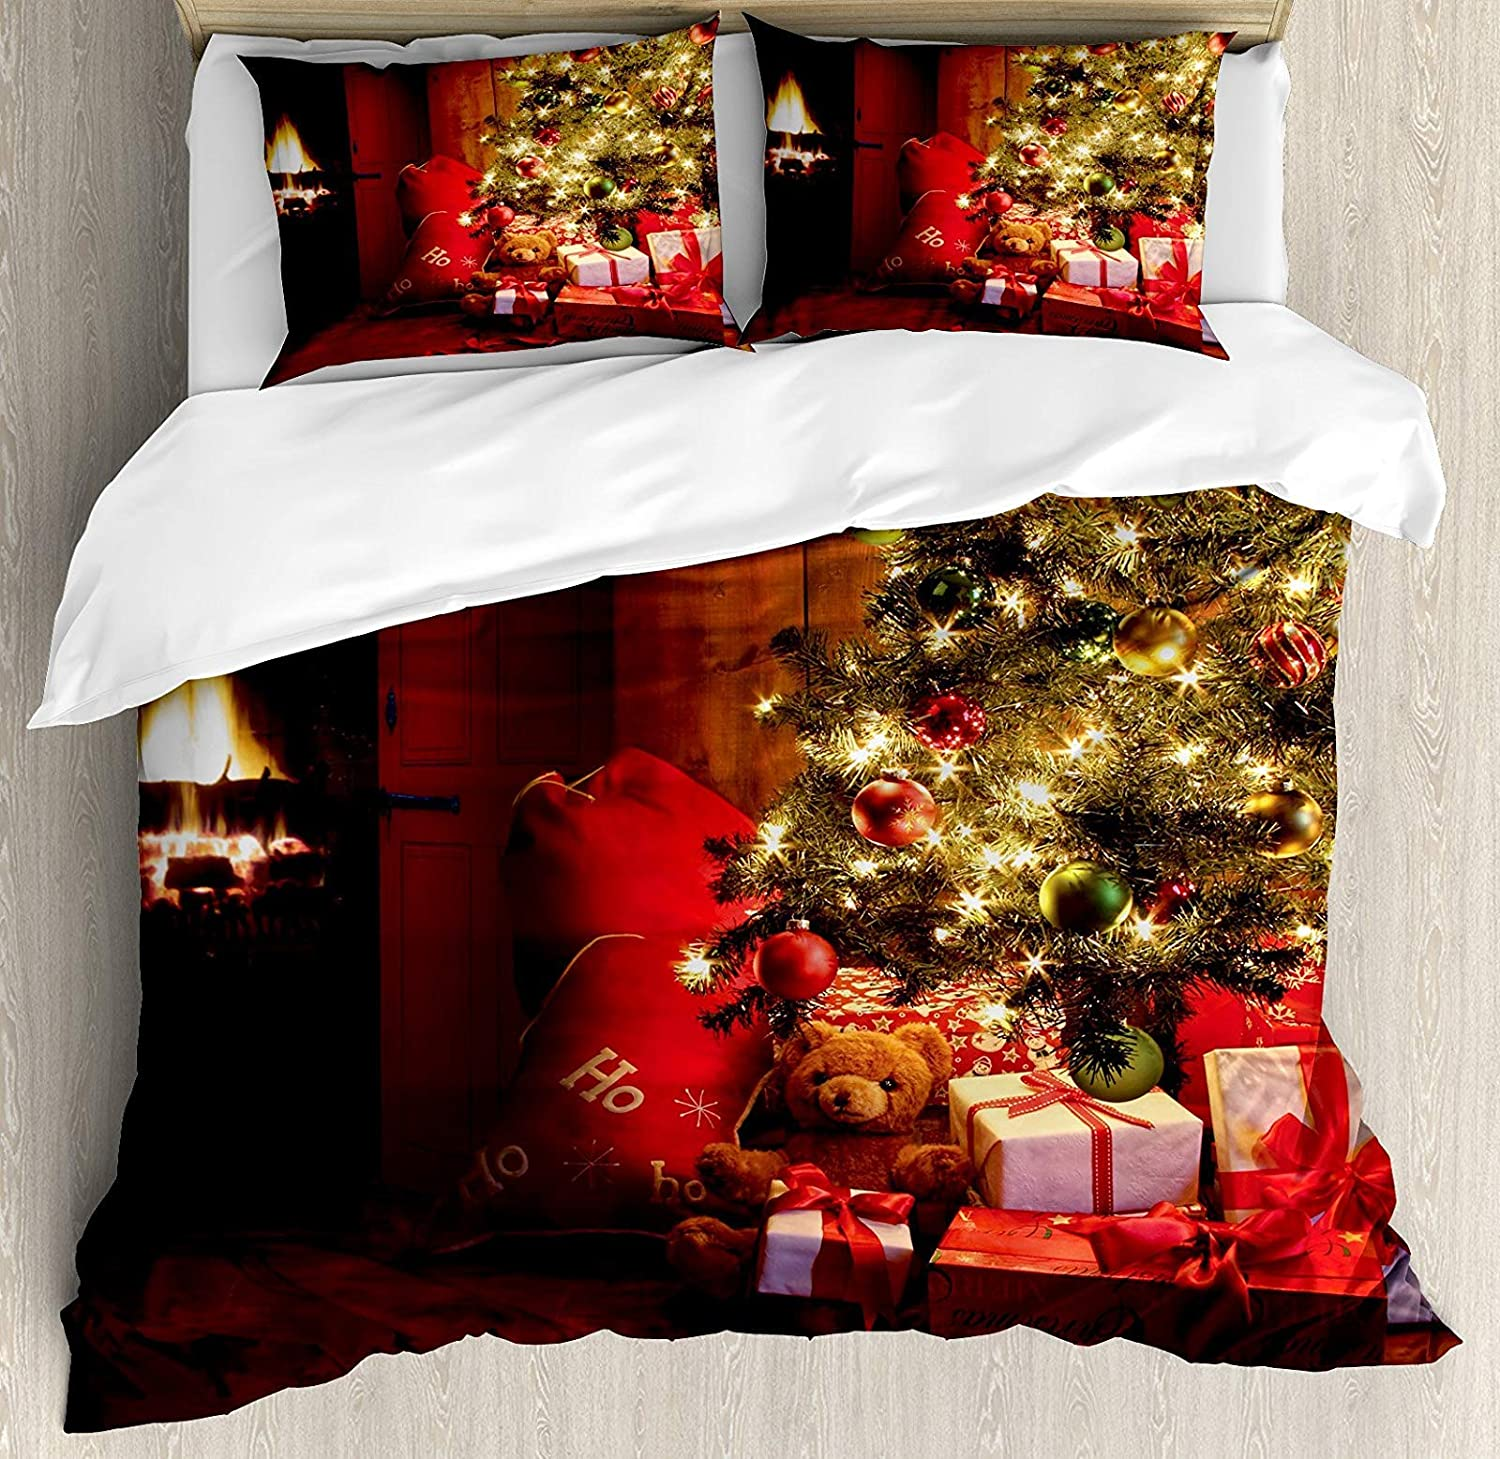 Christmas 4 Pcs Bedding Set Twin Size, Xmas Scene Celebrations Tree Gifts The Fireplace Artful Design Image All Season Duvet Cover Bed Set, Red Yellow